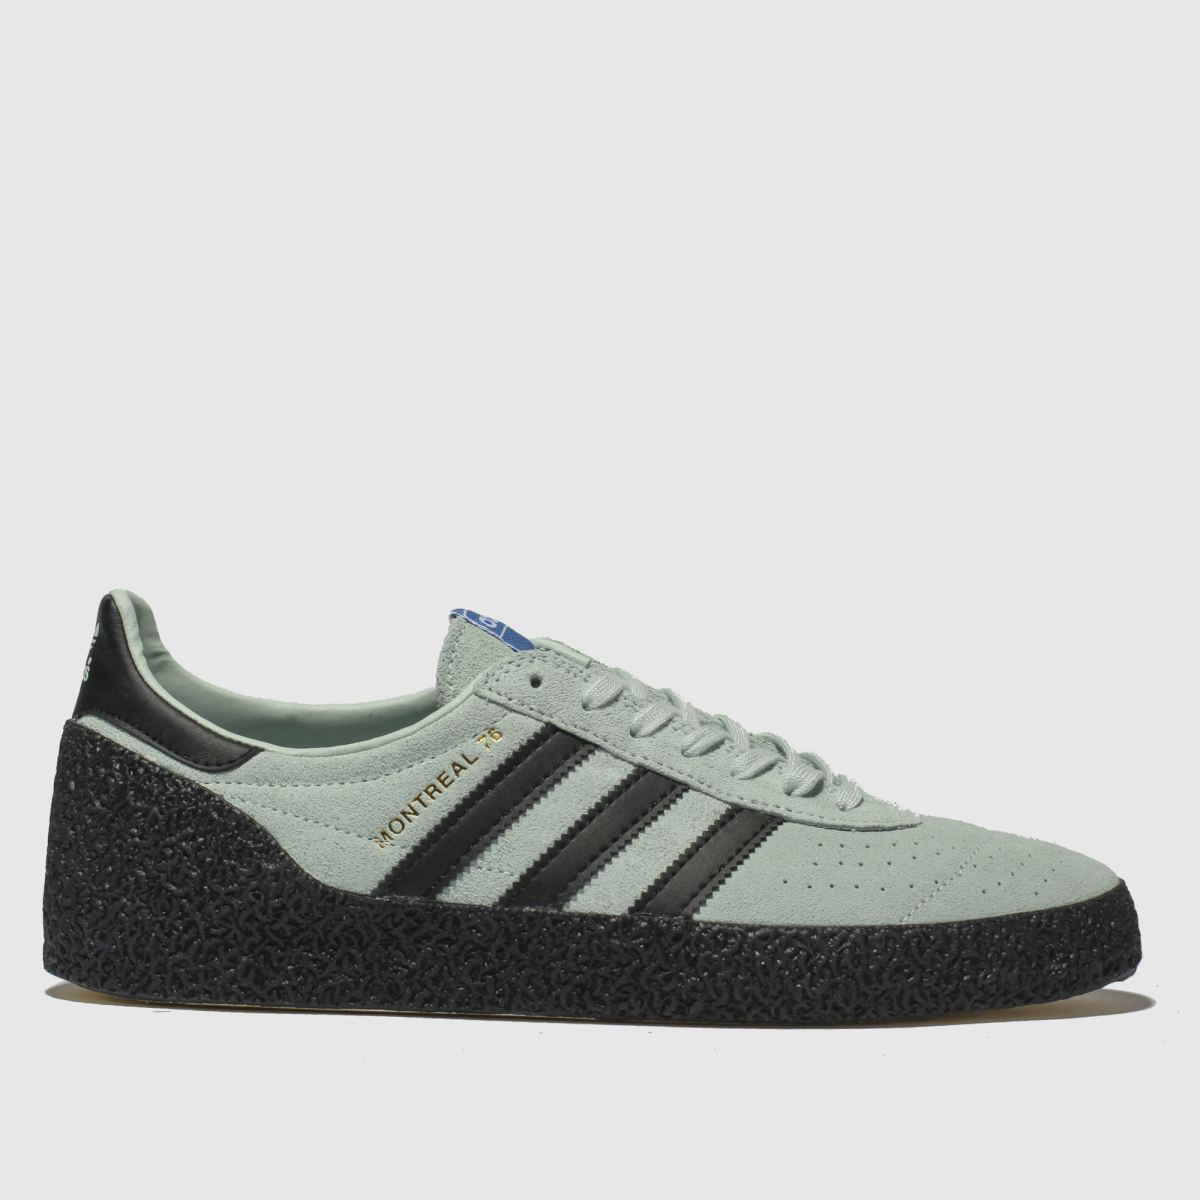 Adidas Light Green Montreal 76 Trainers